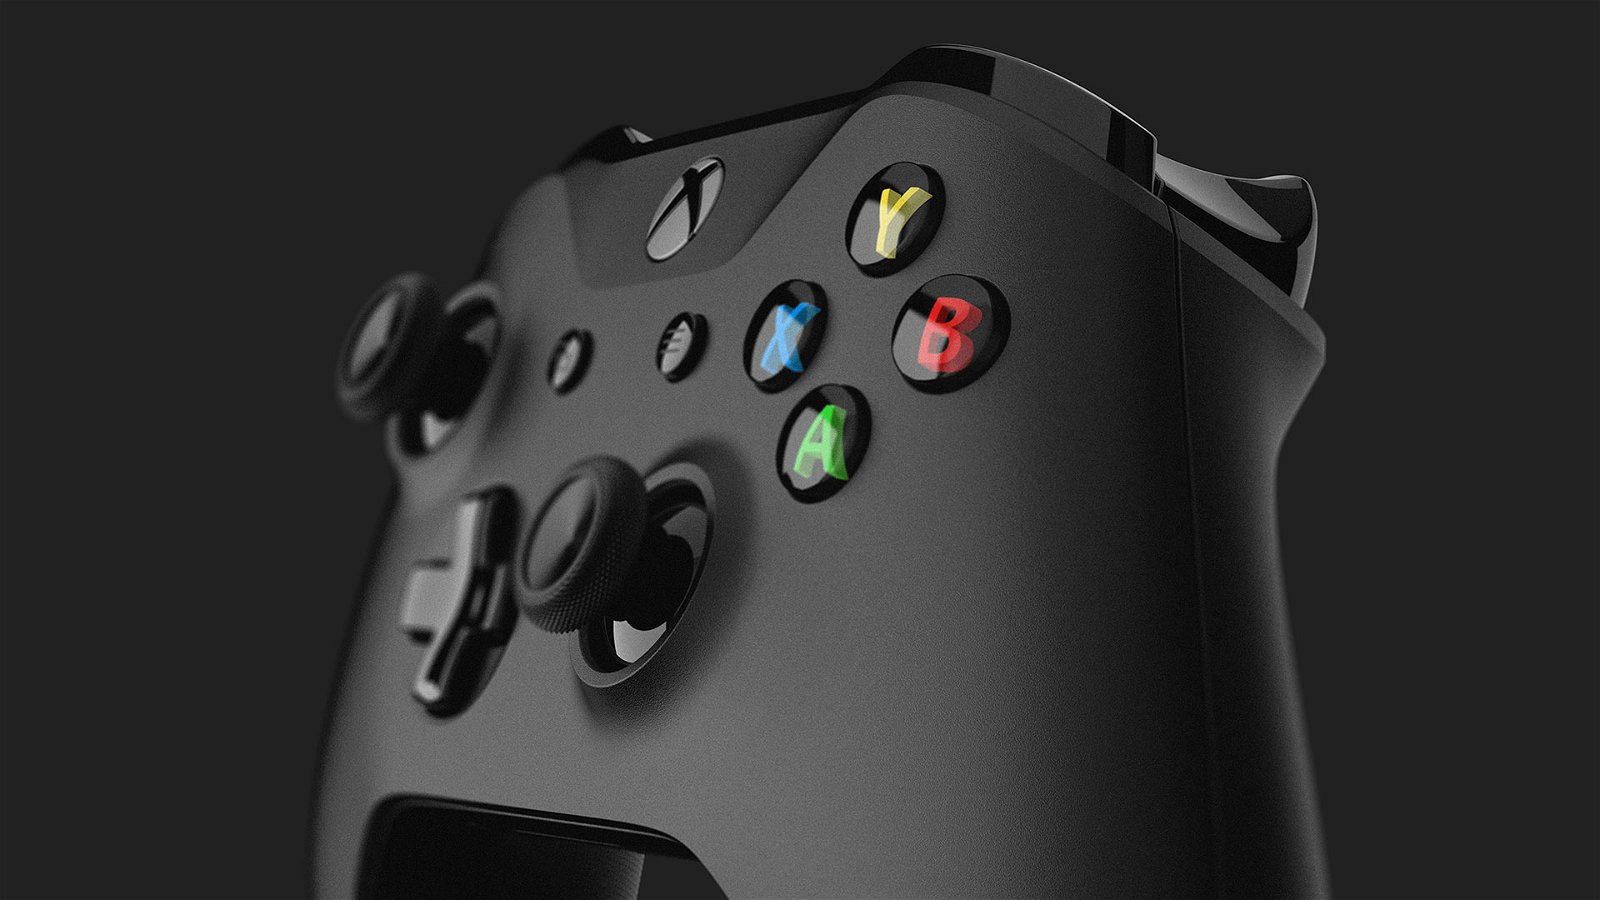 The Future of Xbox One - An Interview with Dave McCarthy 7